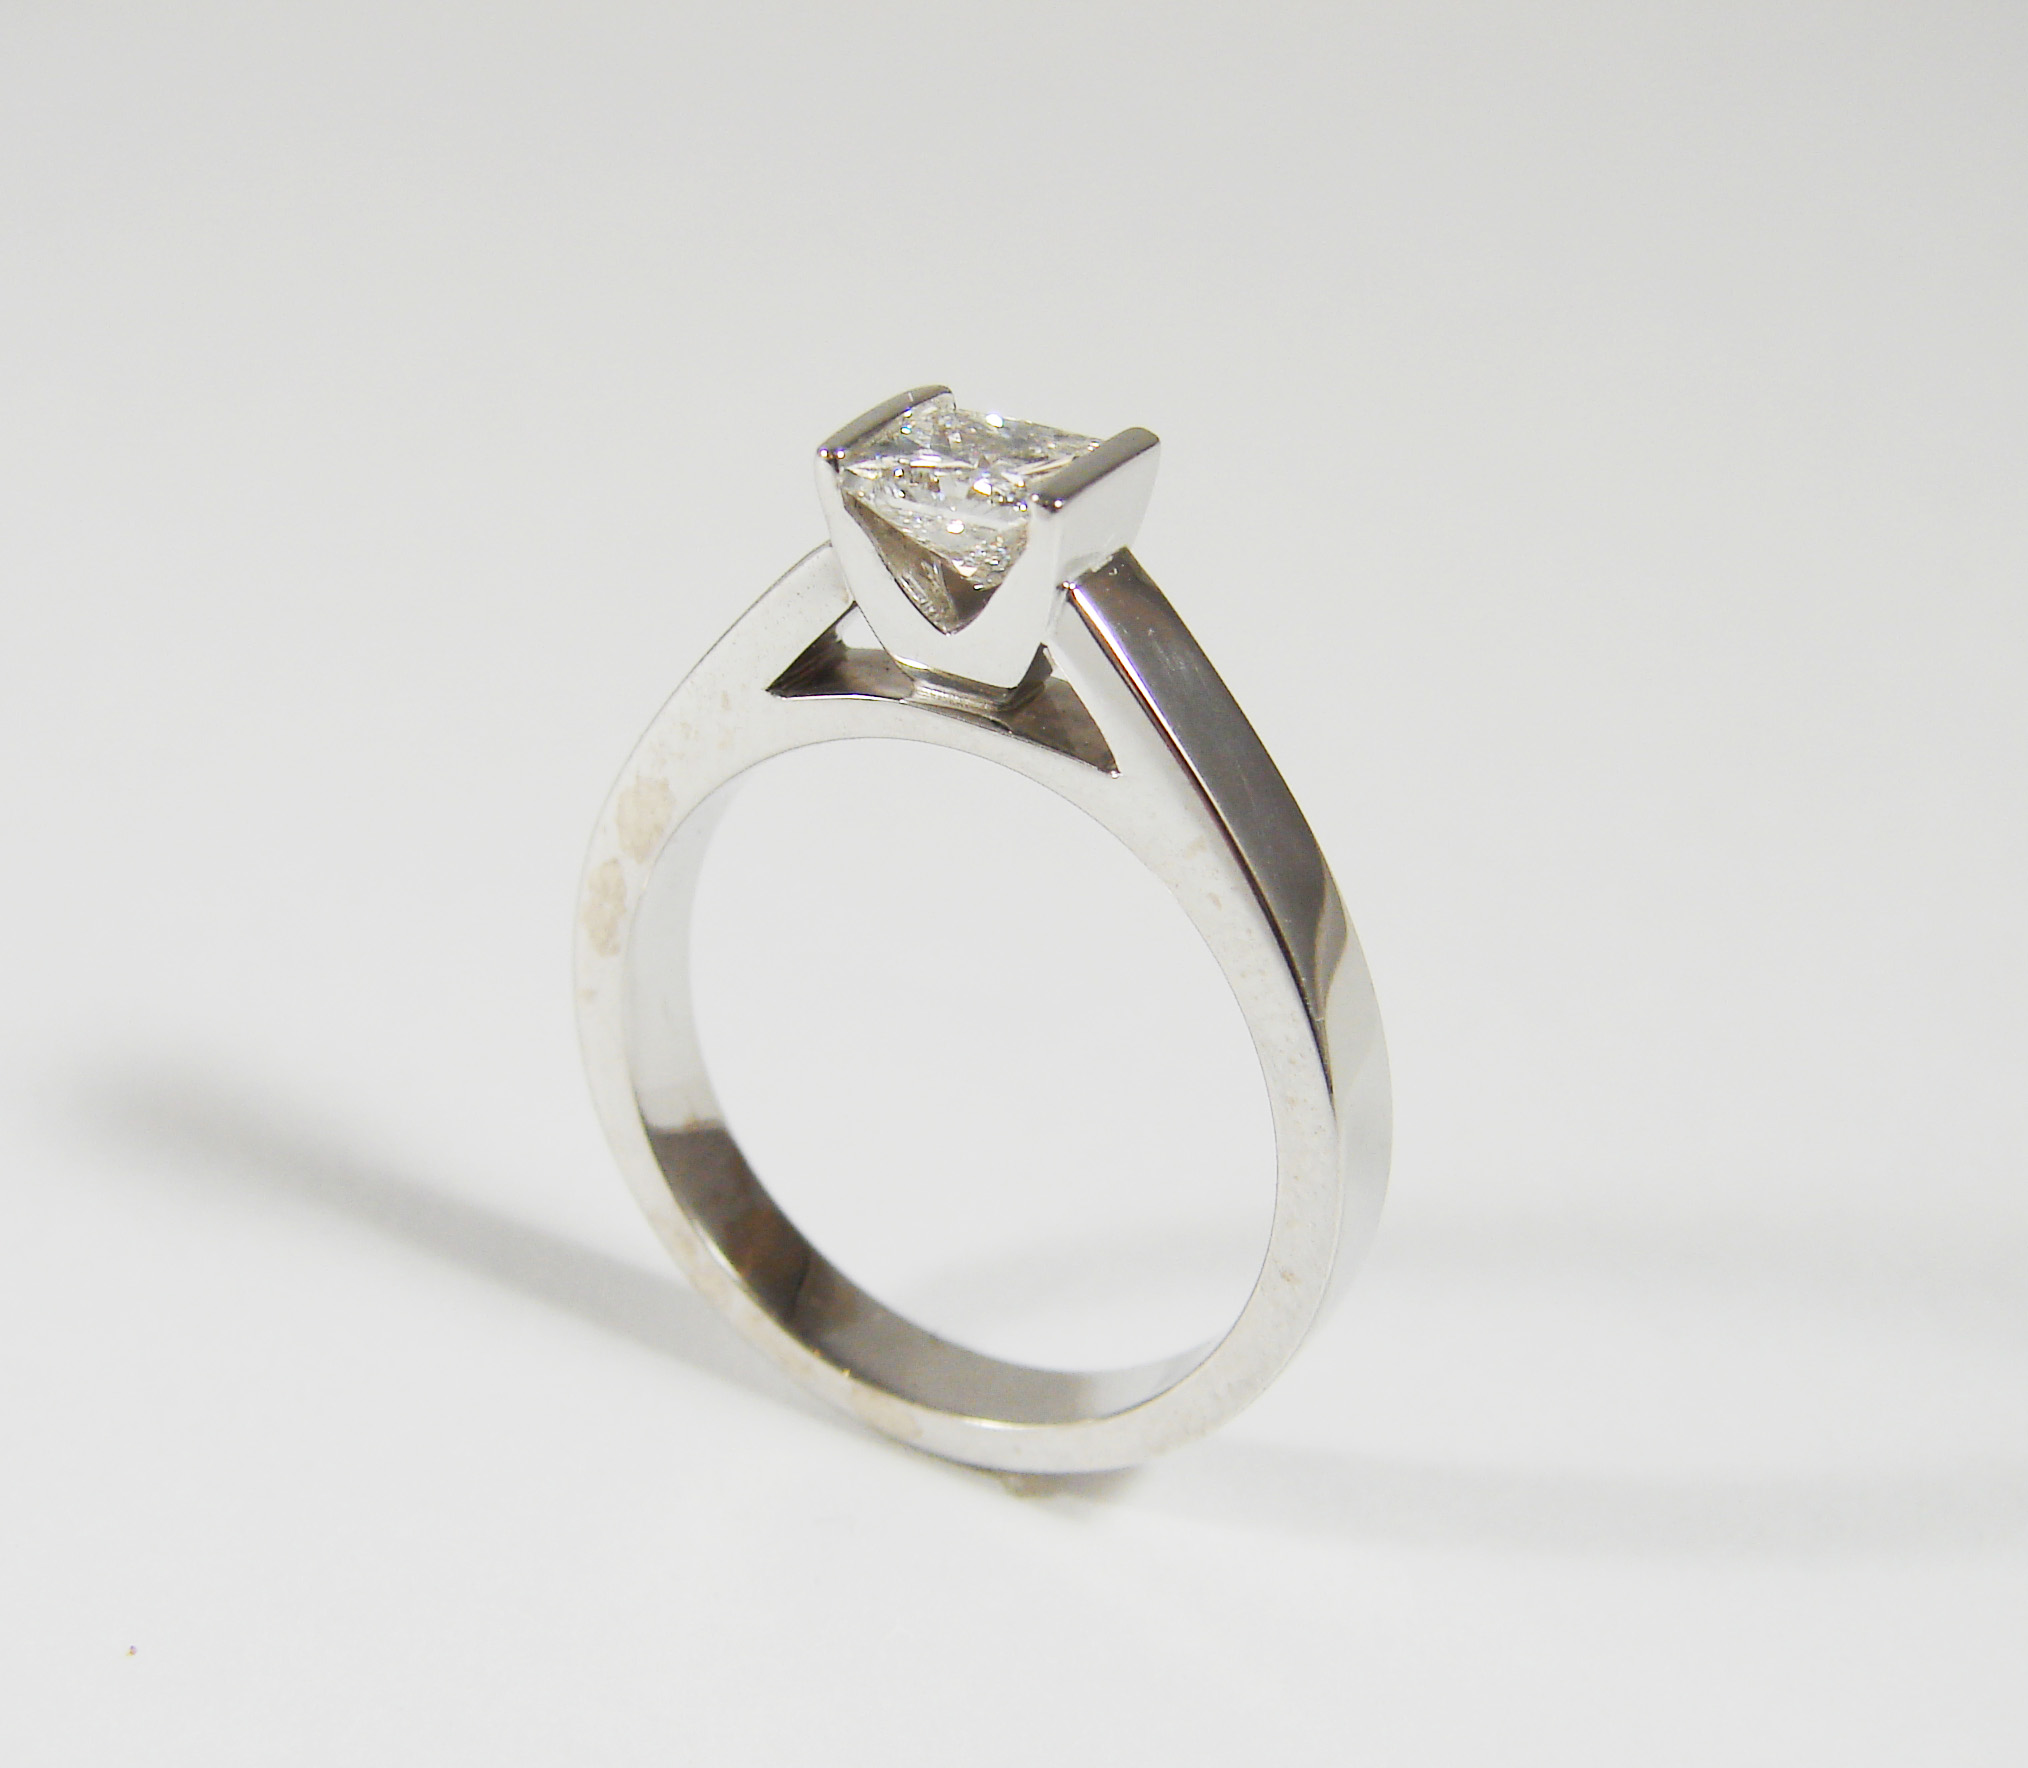 0.85ct princess cut diamond set in a V-shapedchannel setting, set in a flat 3.5mm wide shank that is in 14kt white gold.  Starting at $5600 for this stone size and quality  Can be customizable with any stone, size, metal etc.